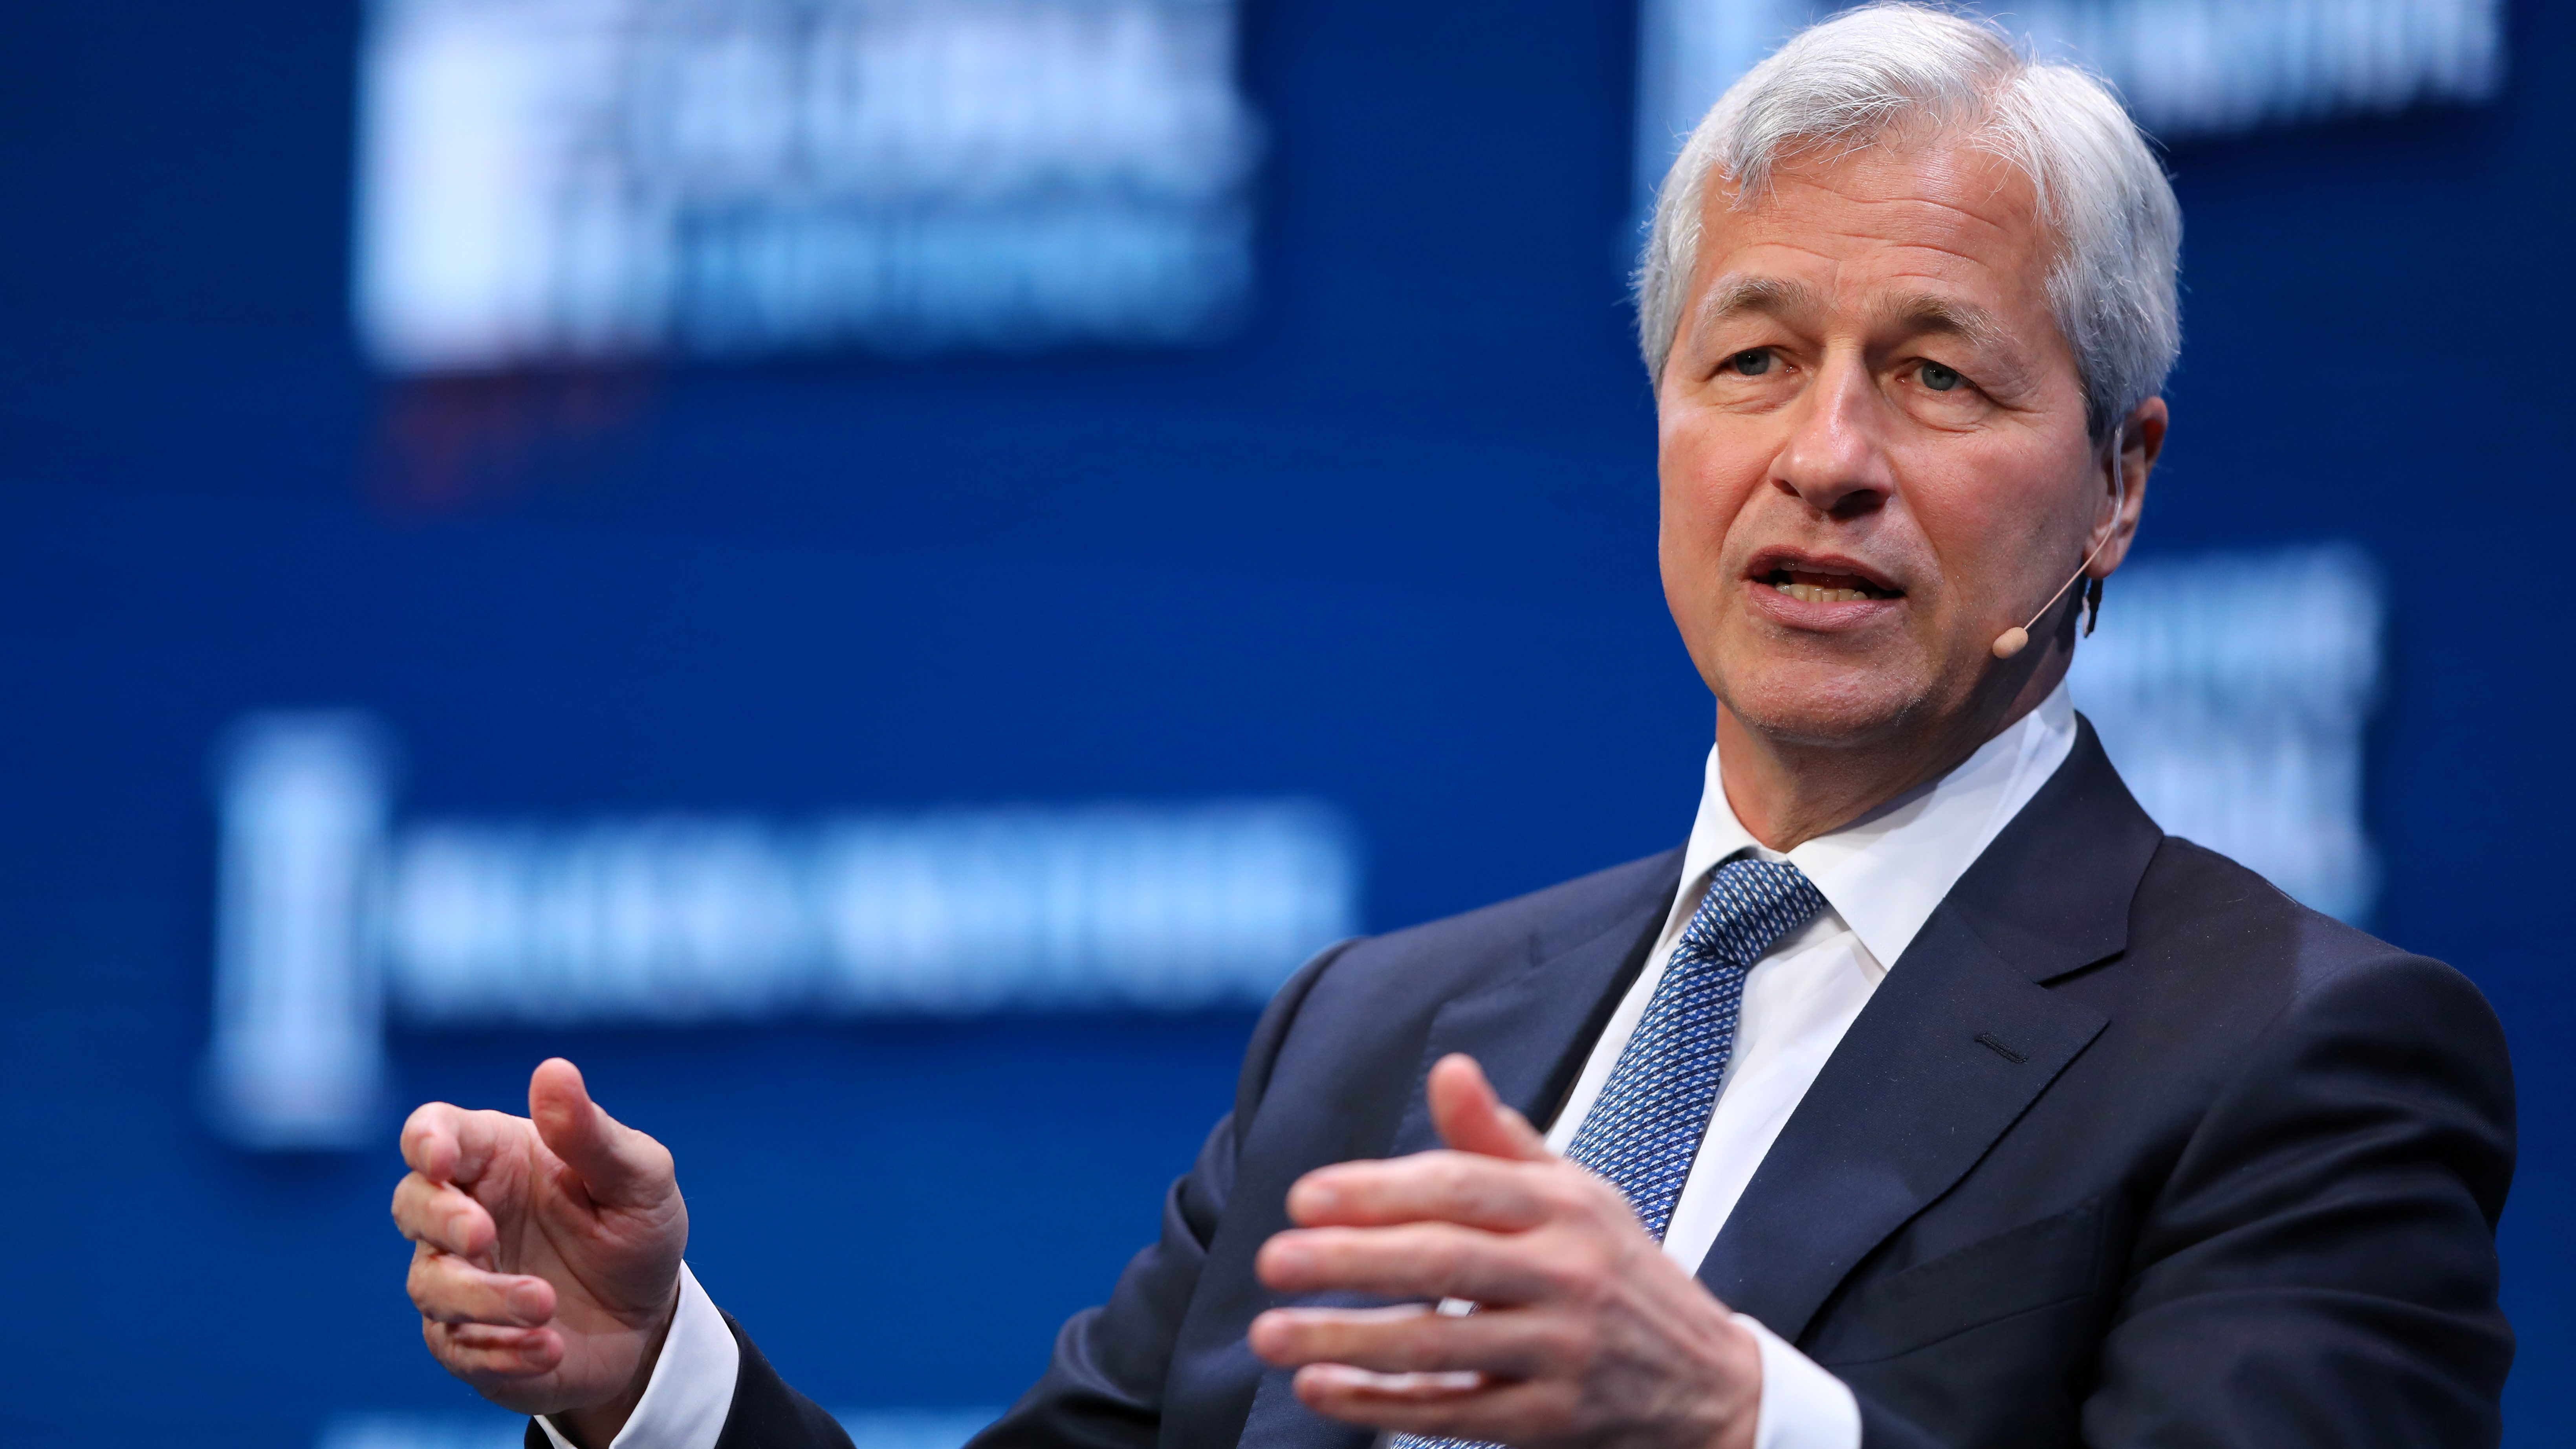 Jamie Dimon, Chairman and CEO of JPMorgan Chase & Co. speaks during the Milken Institute Global Conference in Beverly Hills, California, U.S., May 1, 2017.